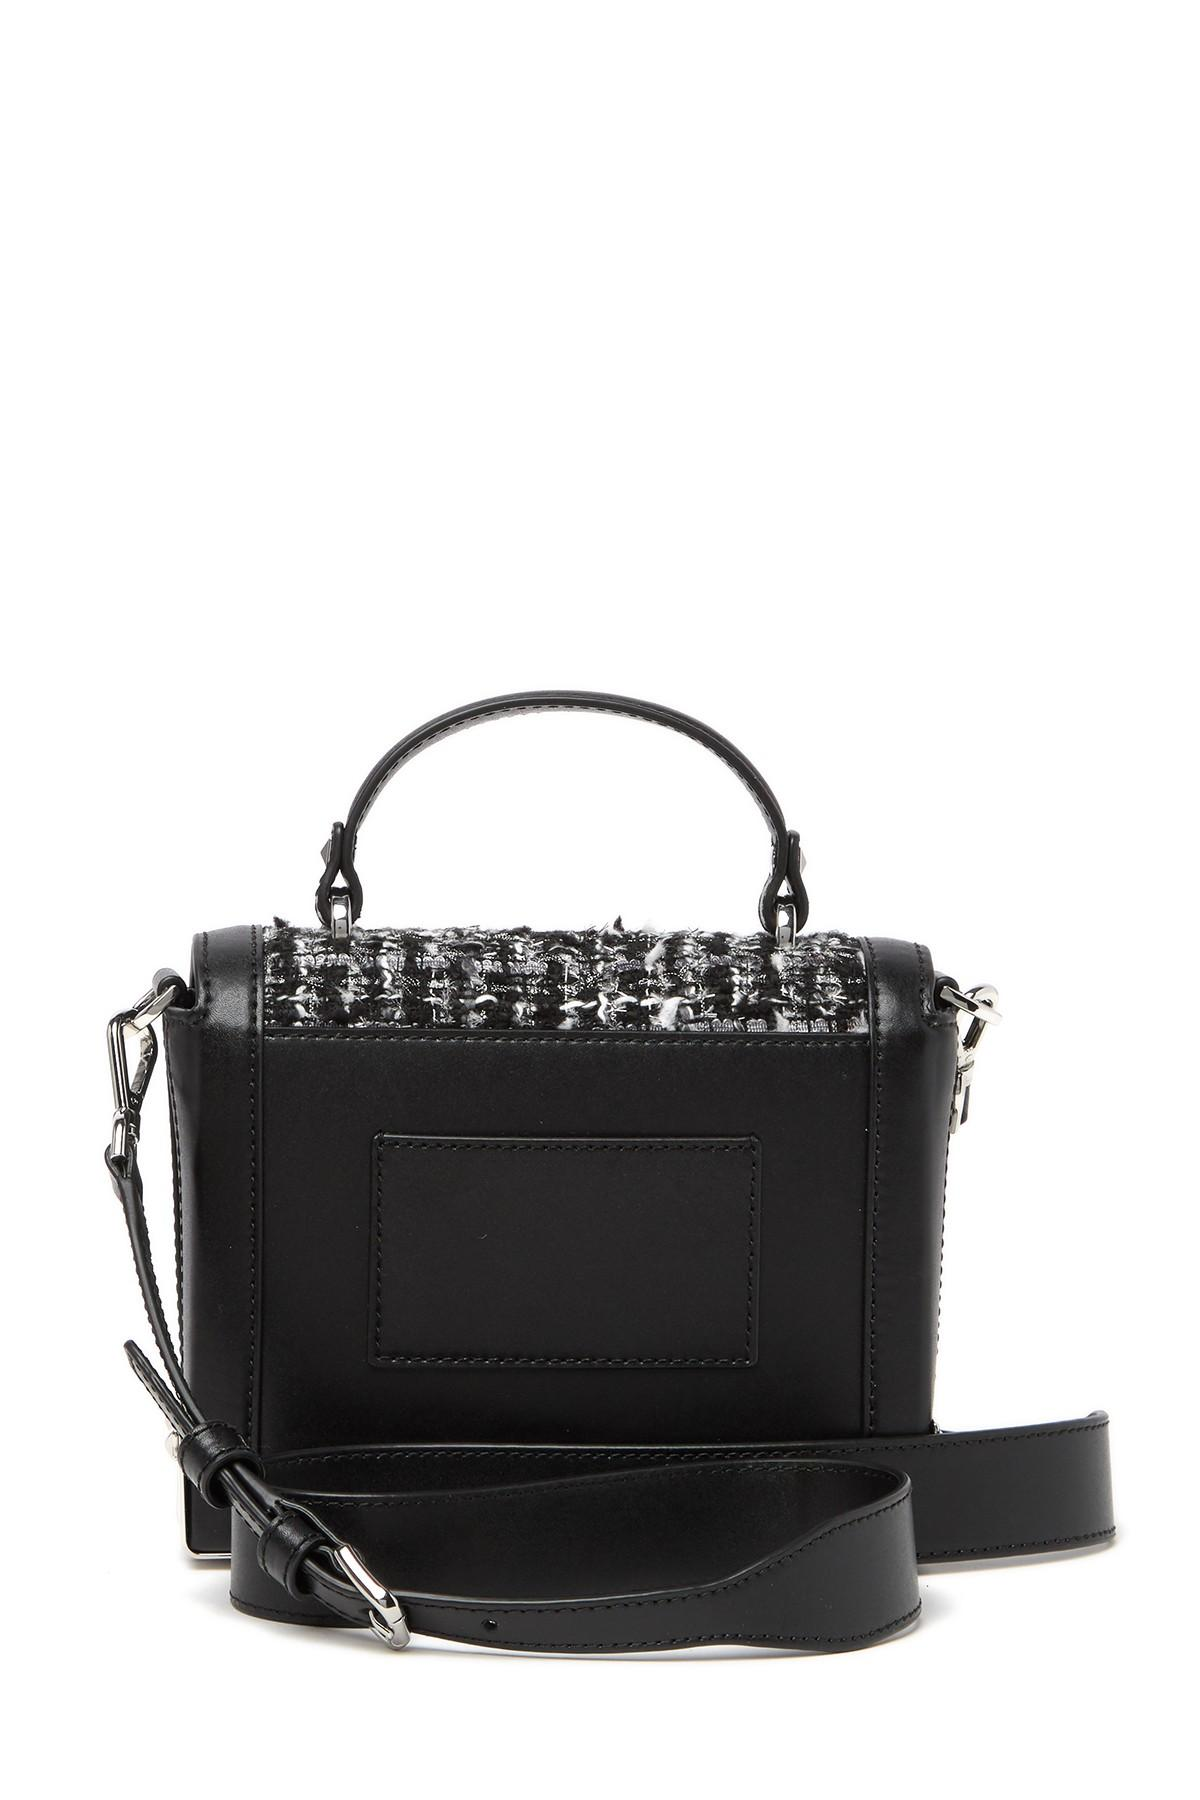 e6594859fb23 MICHAEL Michael Kors - Black Jayne Small Tweed Trunk Shoulder Bag - Lyst.  View fullscreen